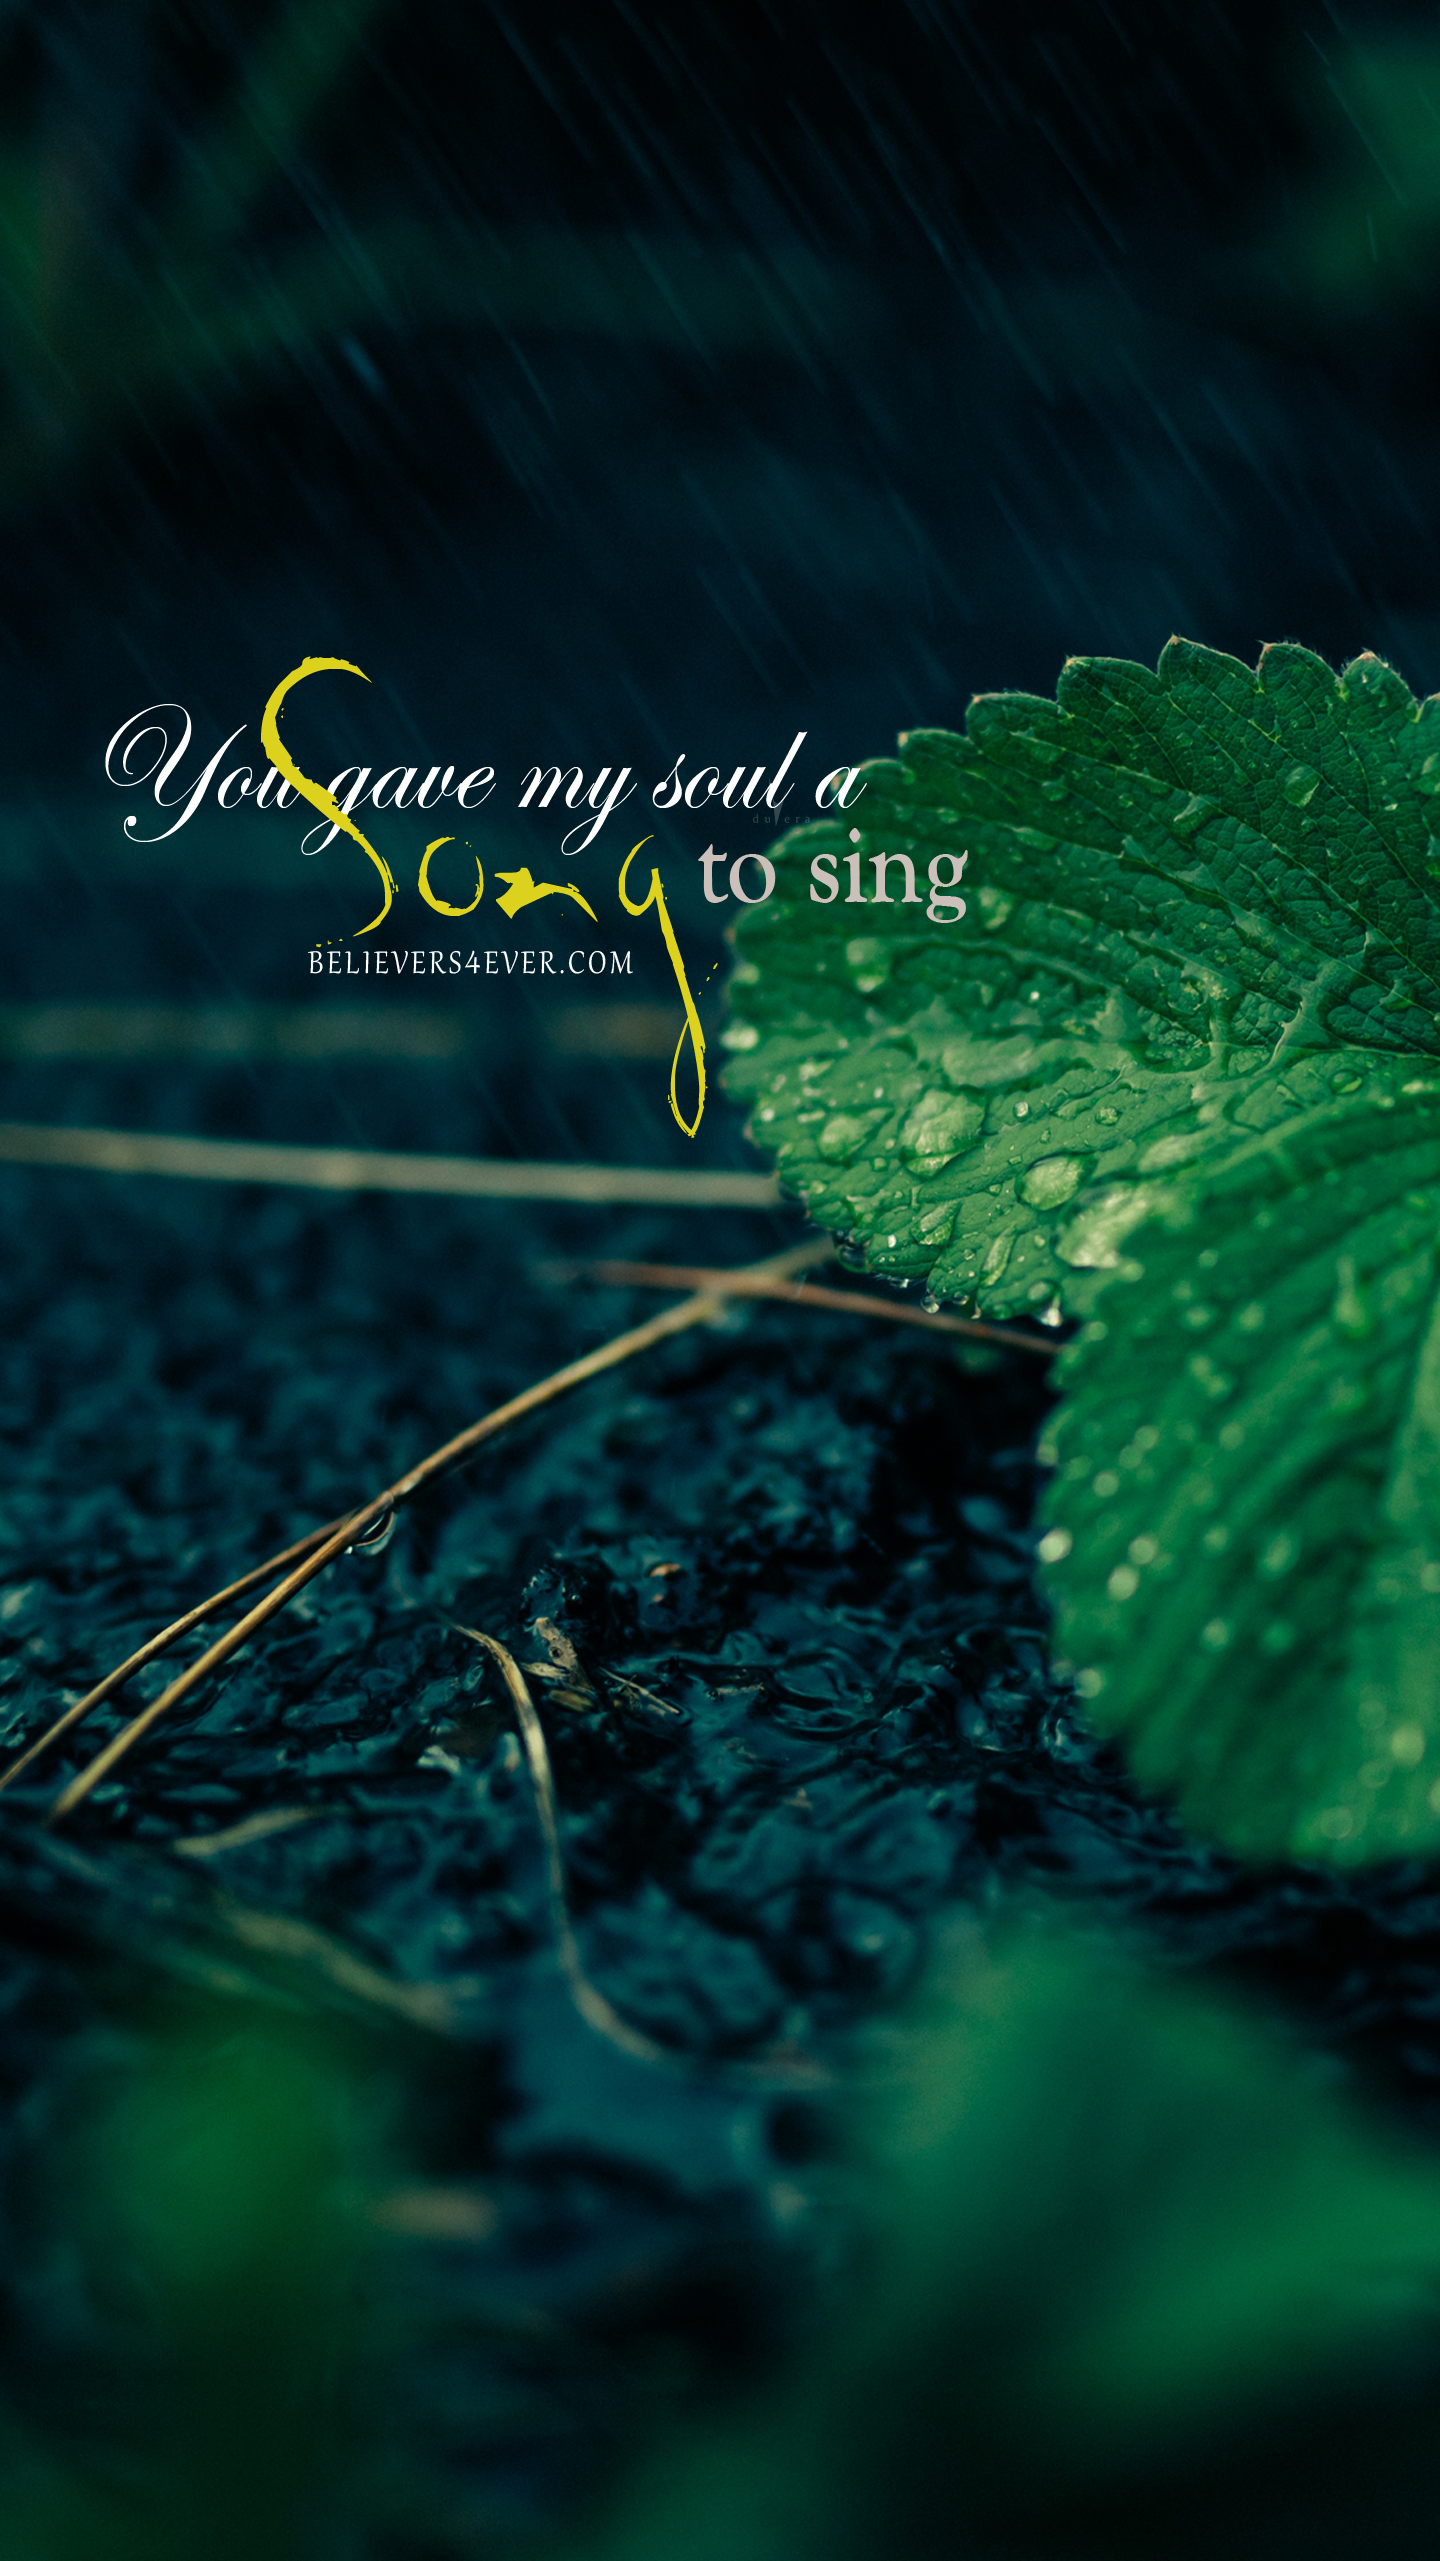 You gave my soul a song to sing wallpapers Wallpaper bible 1440x2561